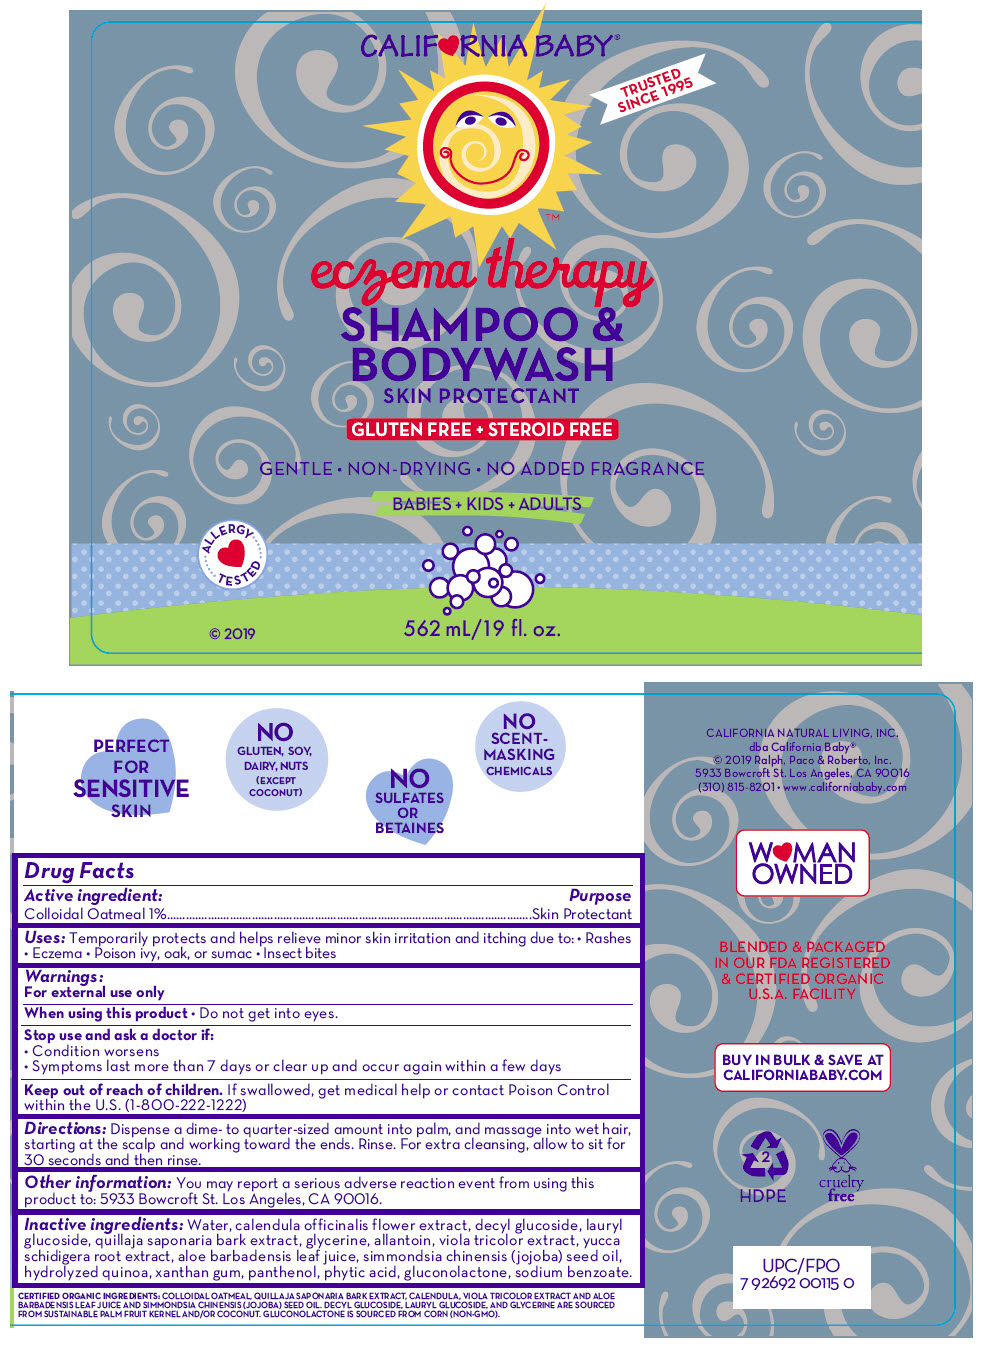 Eczema (Oatmeal) Lotion/shampoo [Organic & Sustainable Beauty]